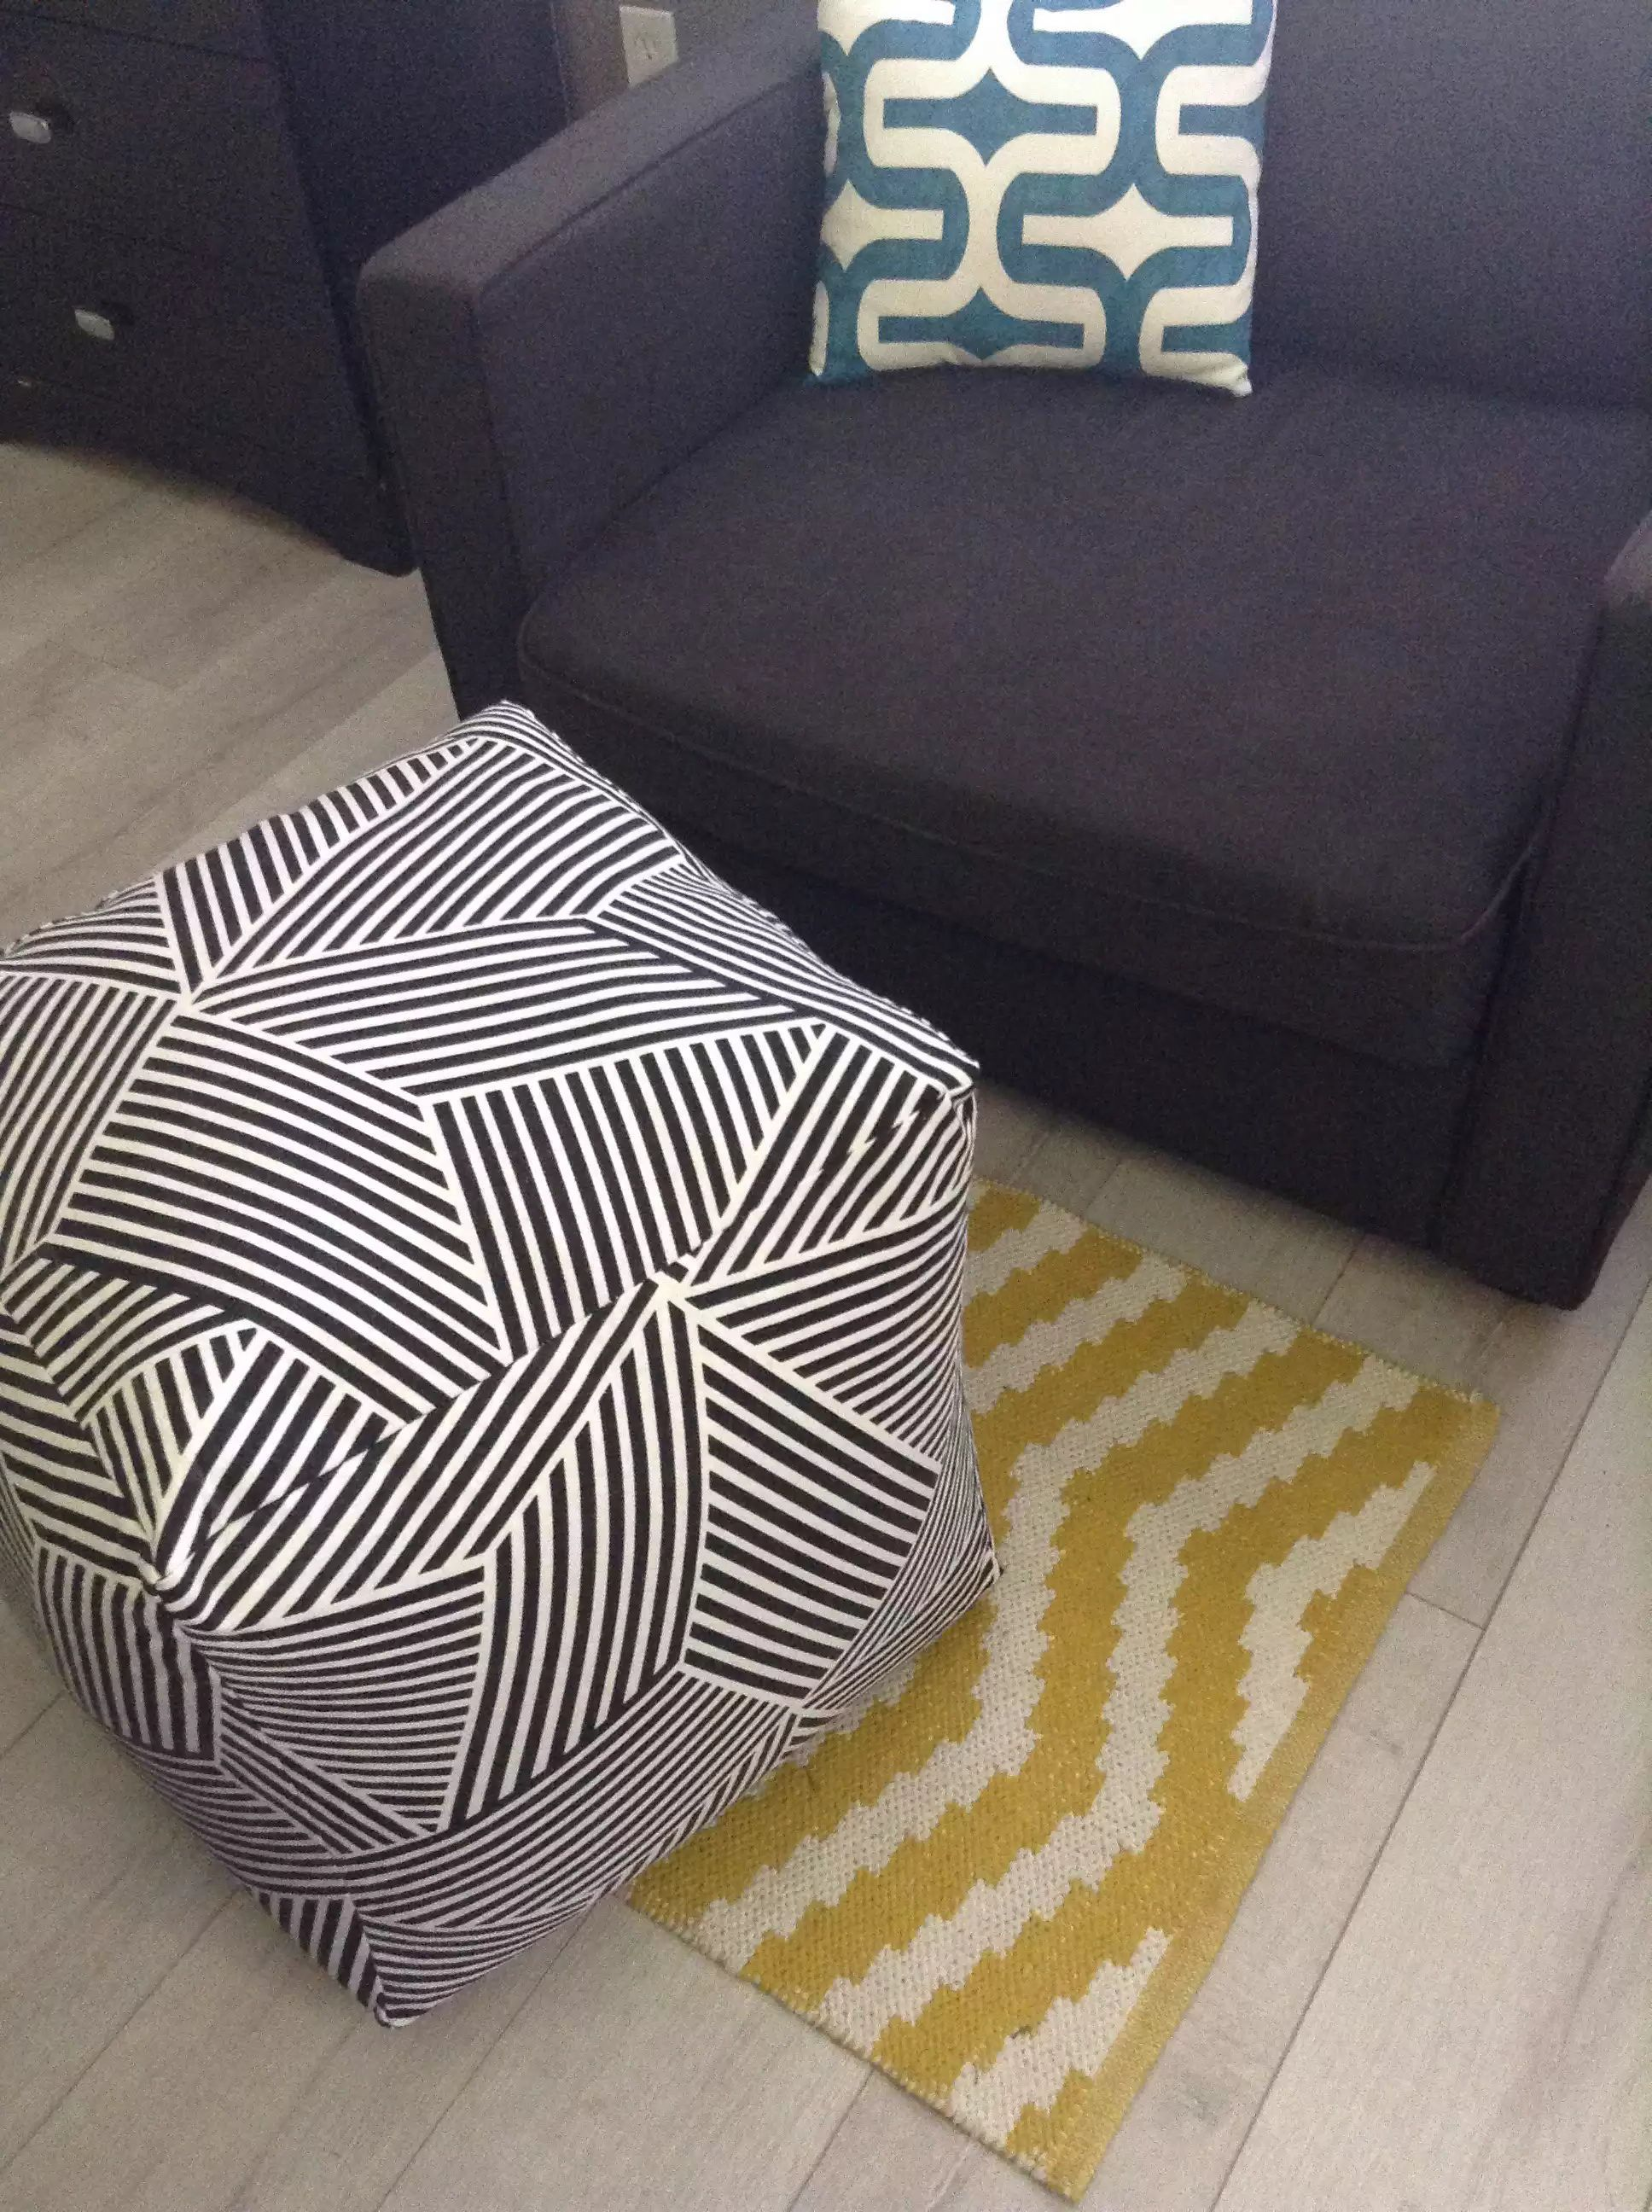 Make an easy diy floor pouf for 35 or less diy pinterest make an easy diy floor pouf for 35 or less solutioingenieria Choice Image